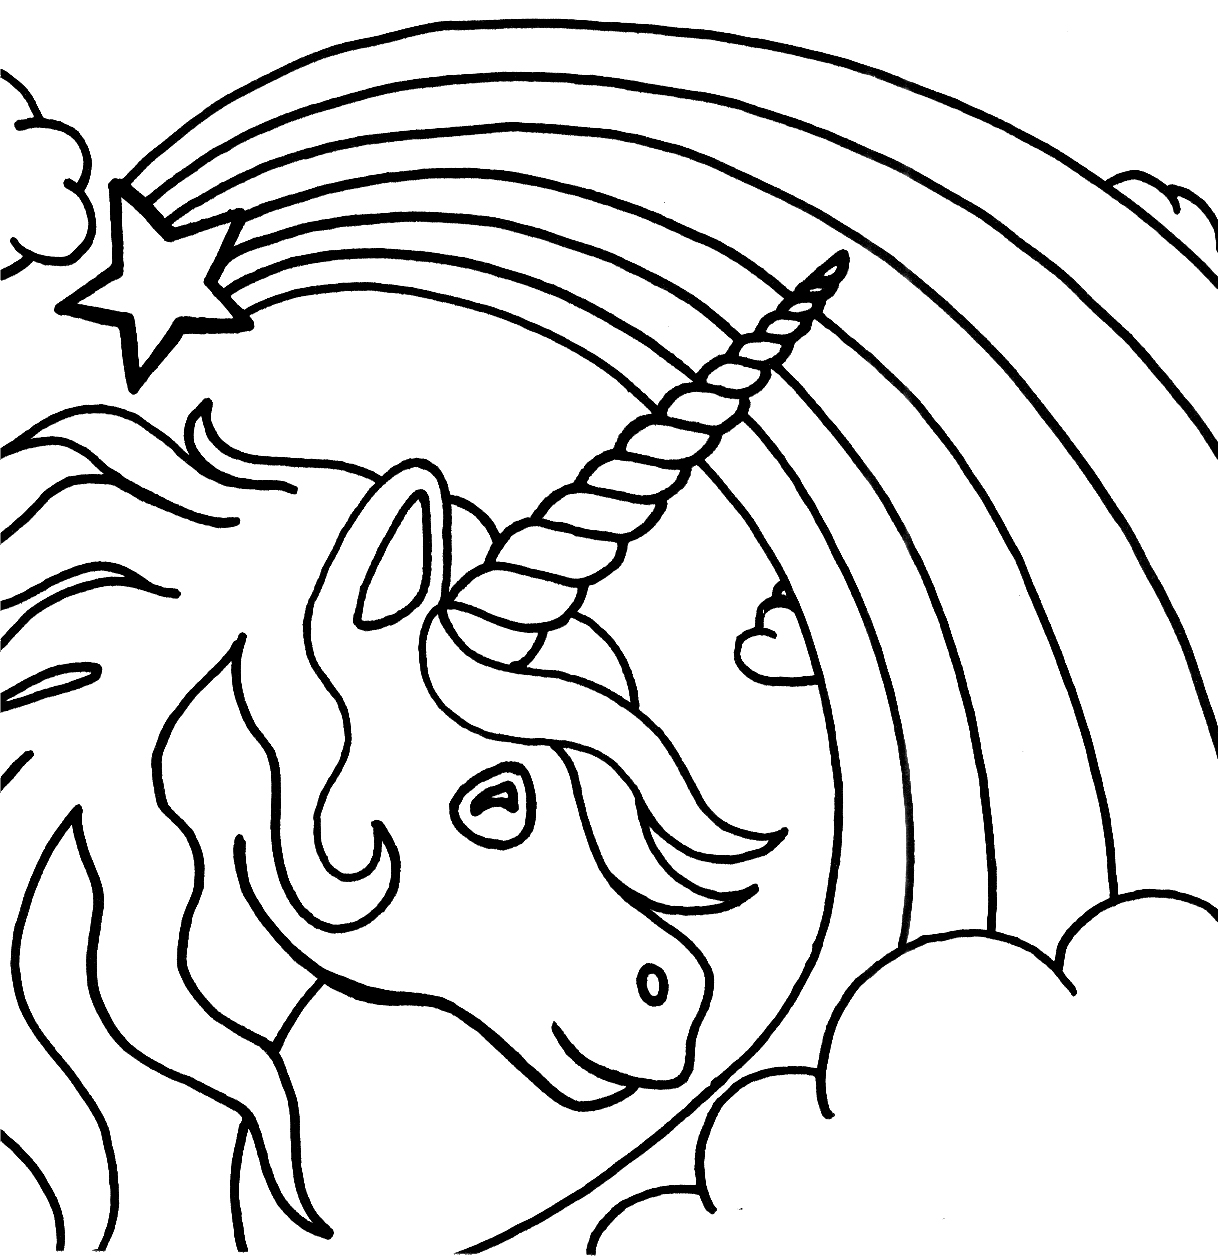 unicorn printable coloring pages - photo#6